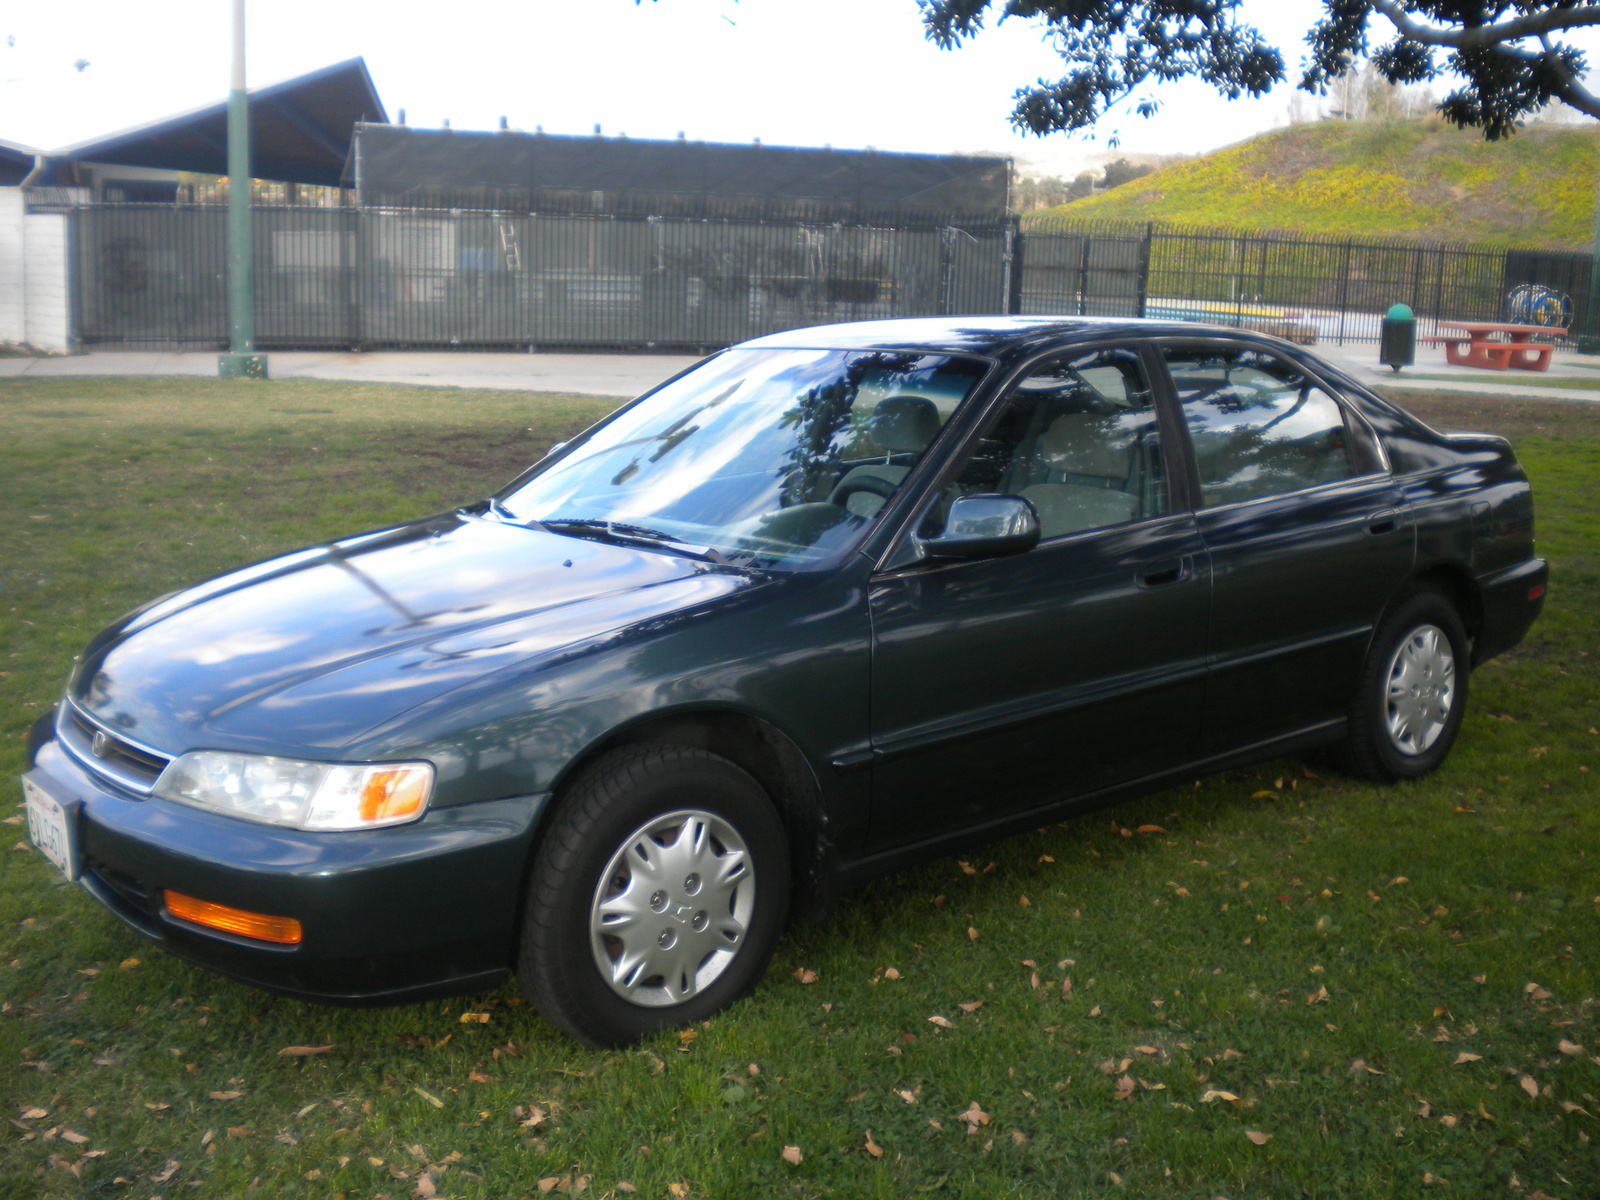 1997 Honda Accord - Pictures - CarGurus